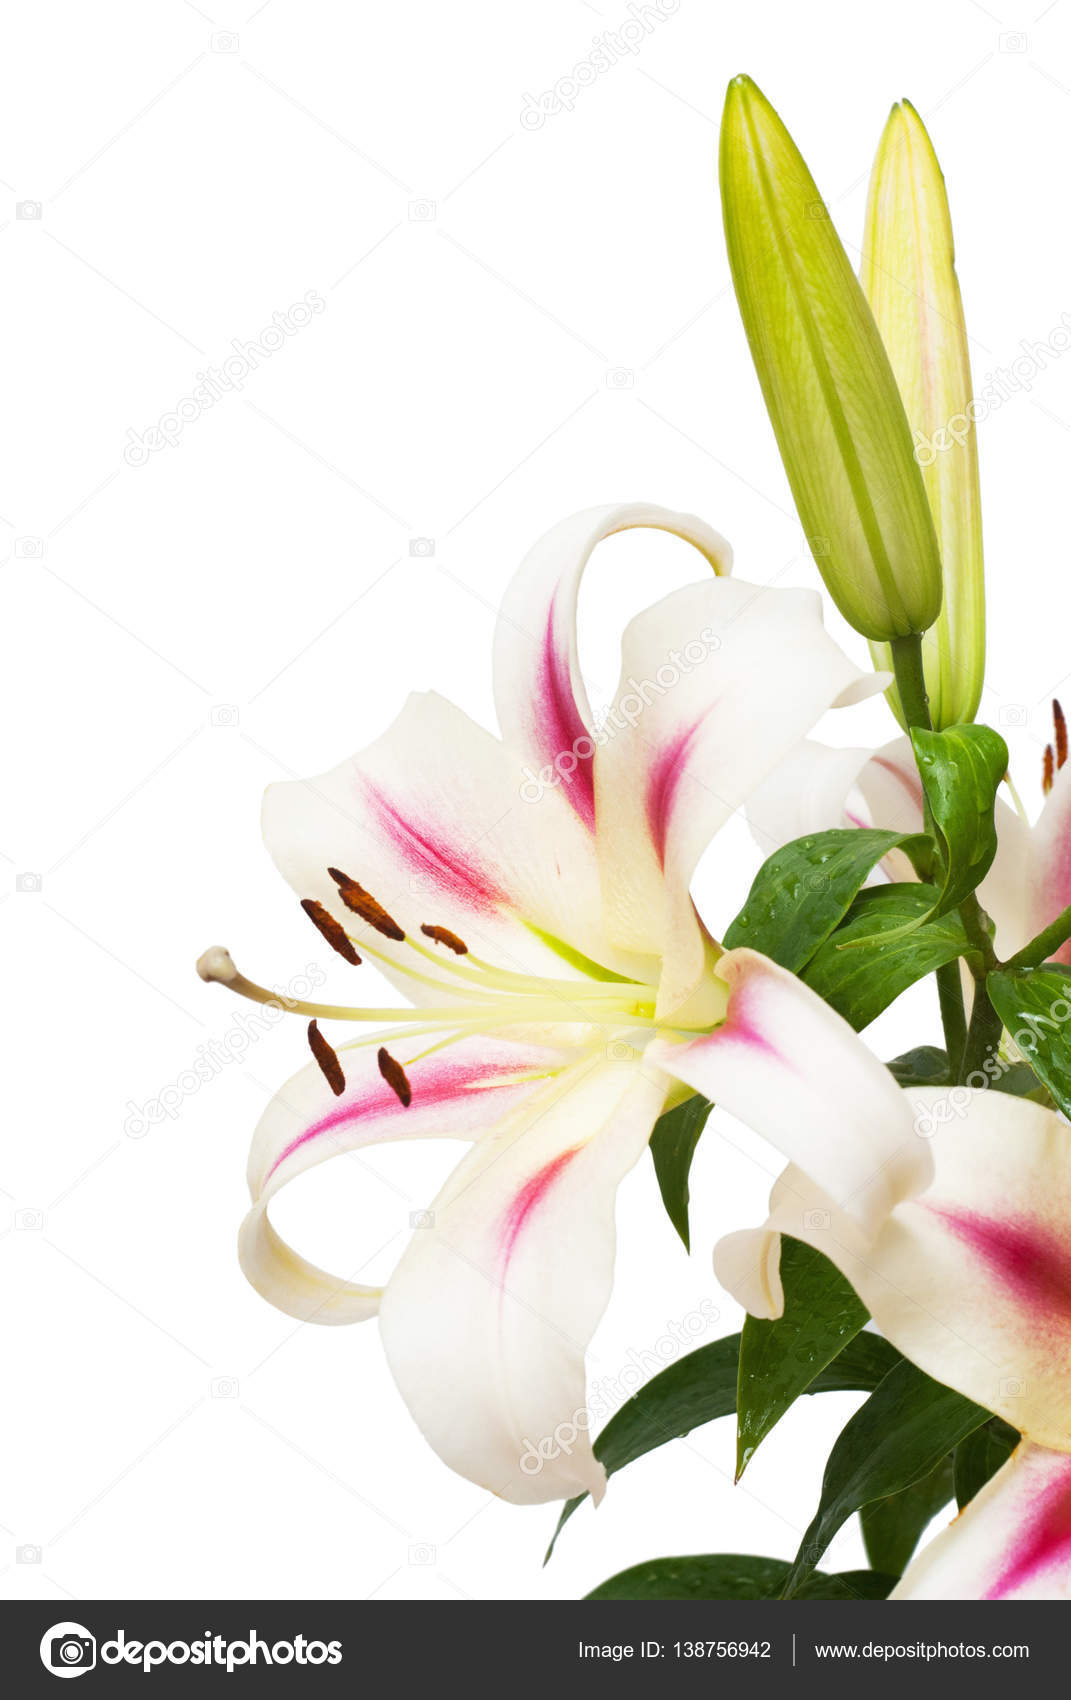 Beautiful bouquet of white lily flower stock photo flowerstudio beautiful bouquet of white lily flower isolated on white background form of a starfish flat lay top view photo by flowerstudio izmirmasajfo